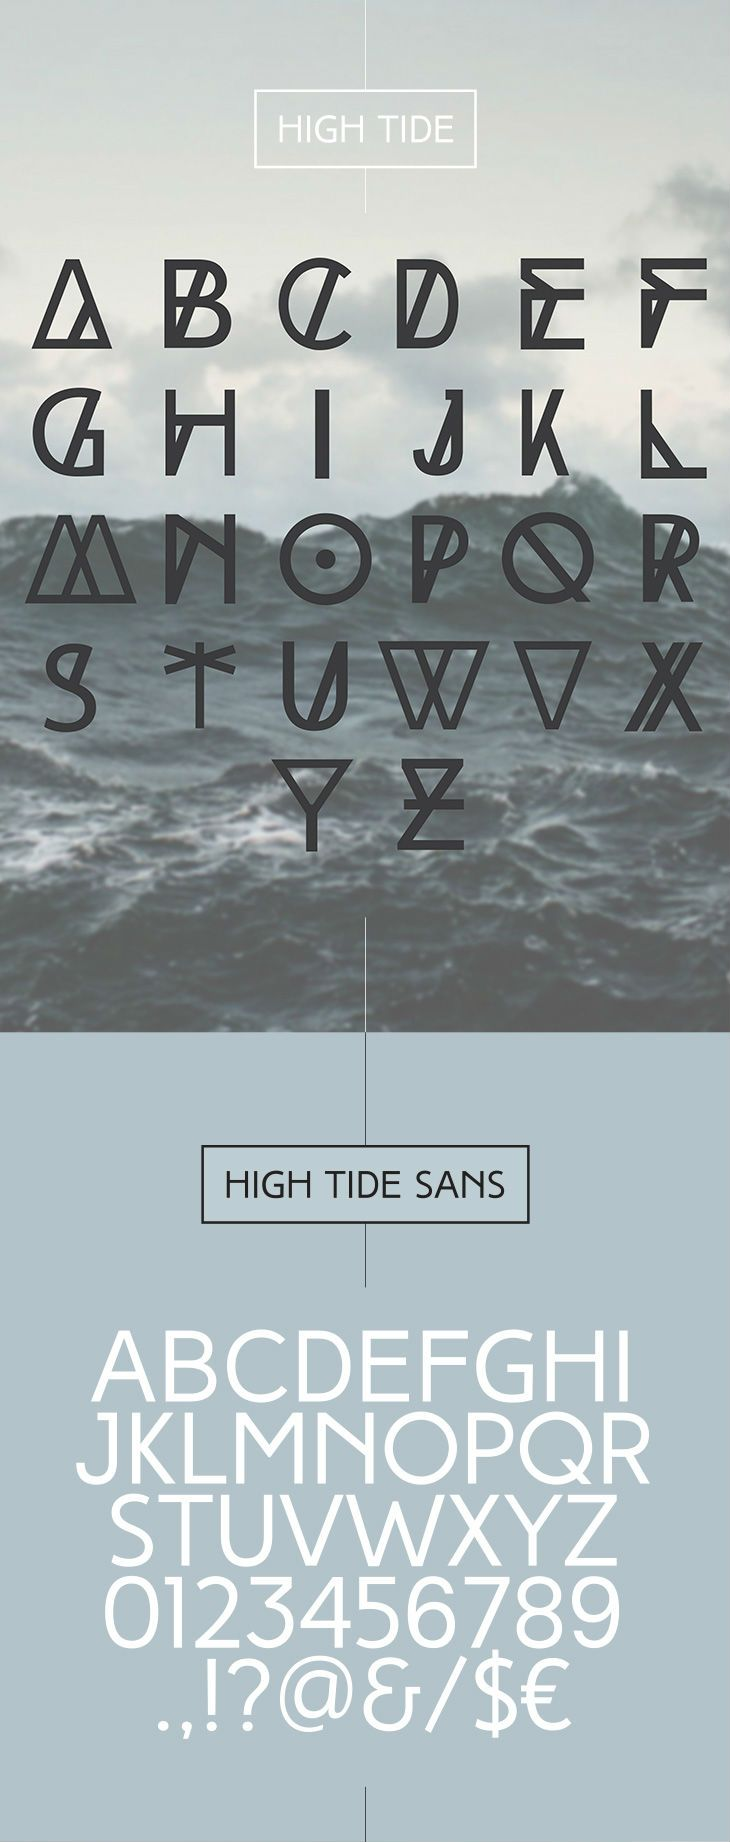 The 75 Best Free Fonts for 2014 - High Tide is an all-caps, decorative typeface designed to be most suitable for titles, headlines, posters, logos, etc.